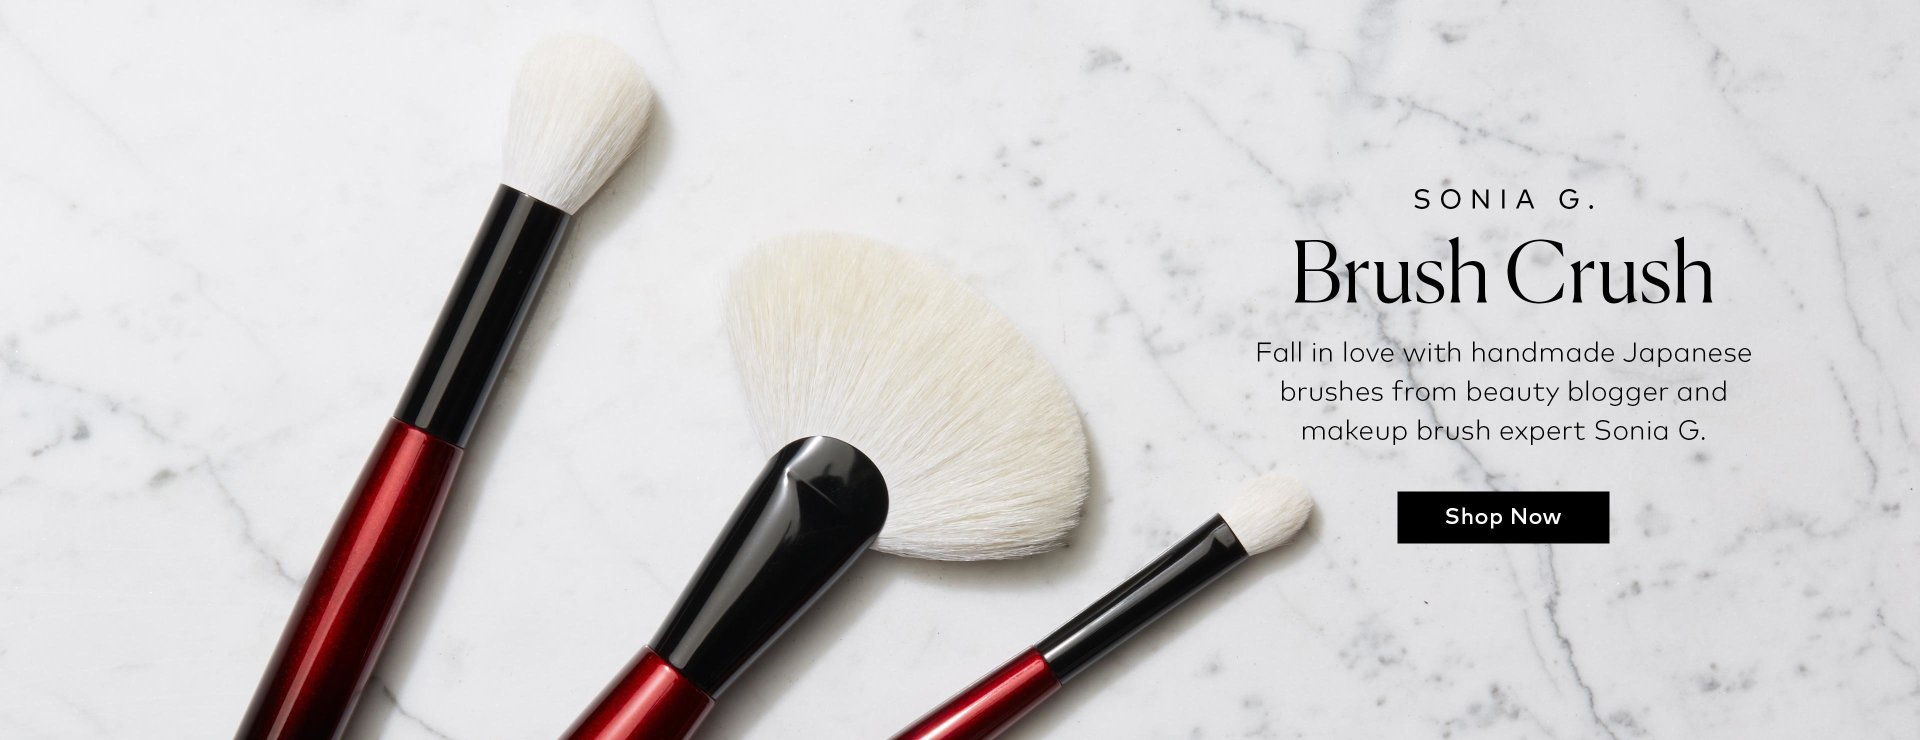 Shop Sonia G.'s Best Sellers on Beautylish.com